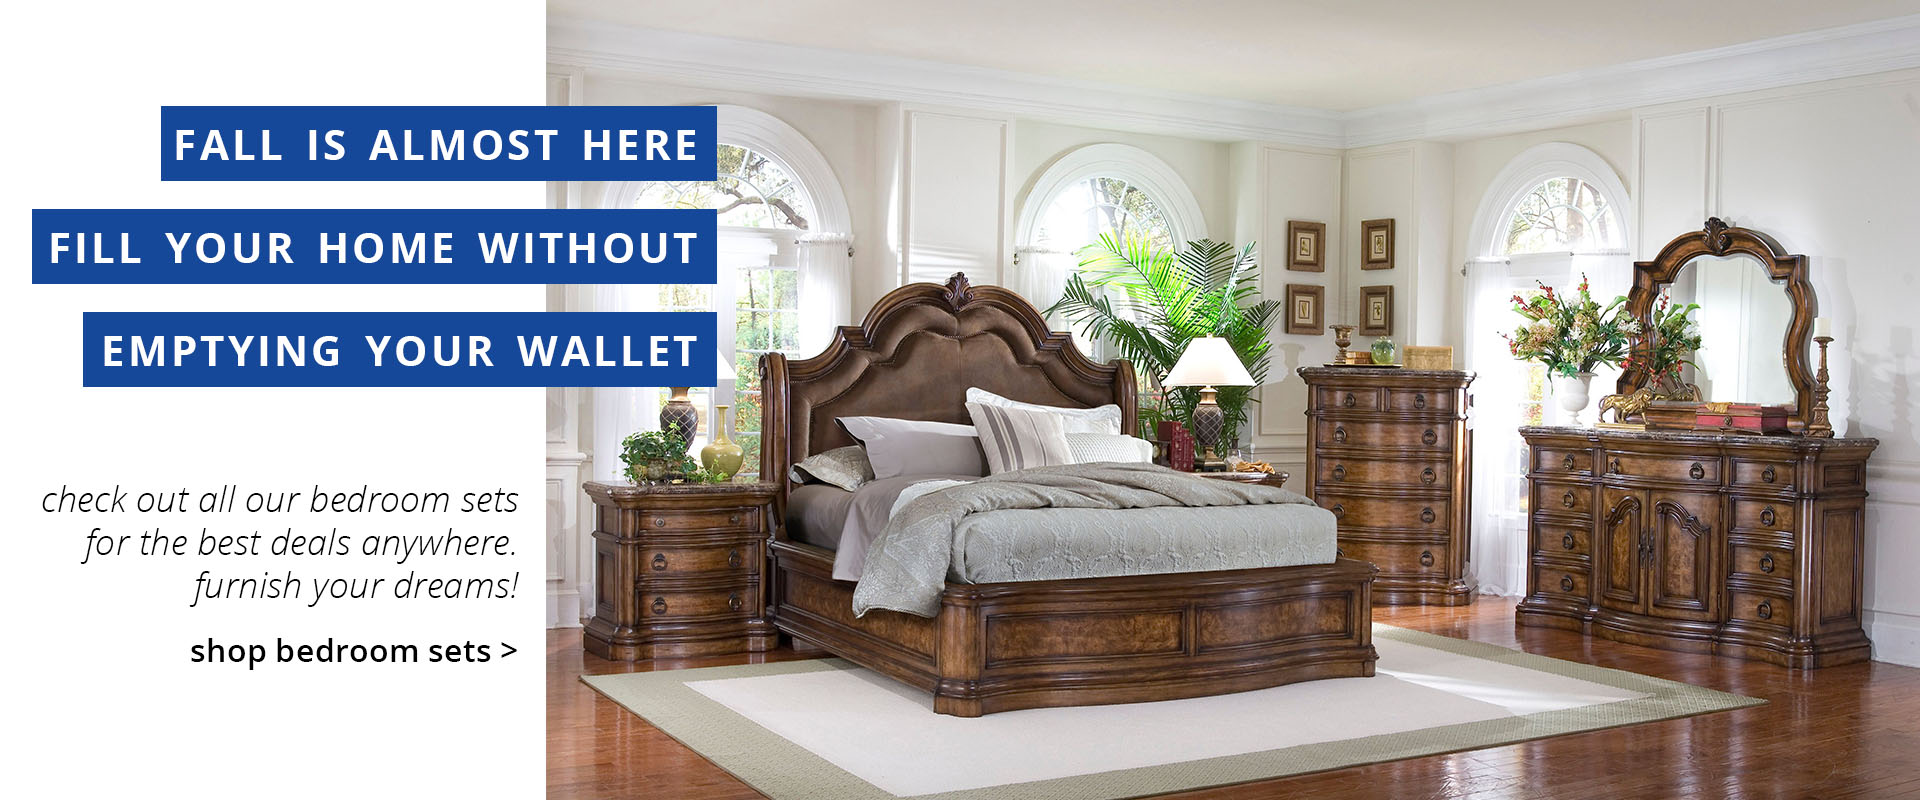 afw lowest prices best selection in home furniture afw fall is almost here fill your home without emptying your wallet